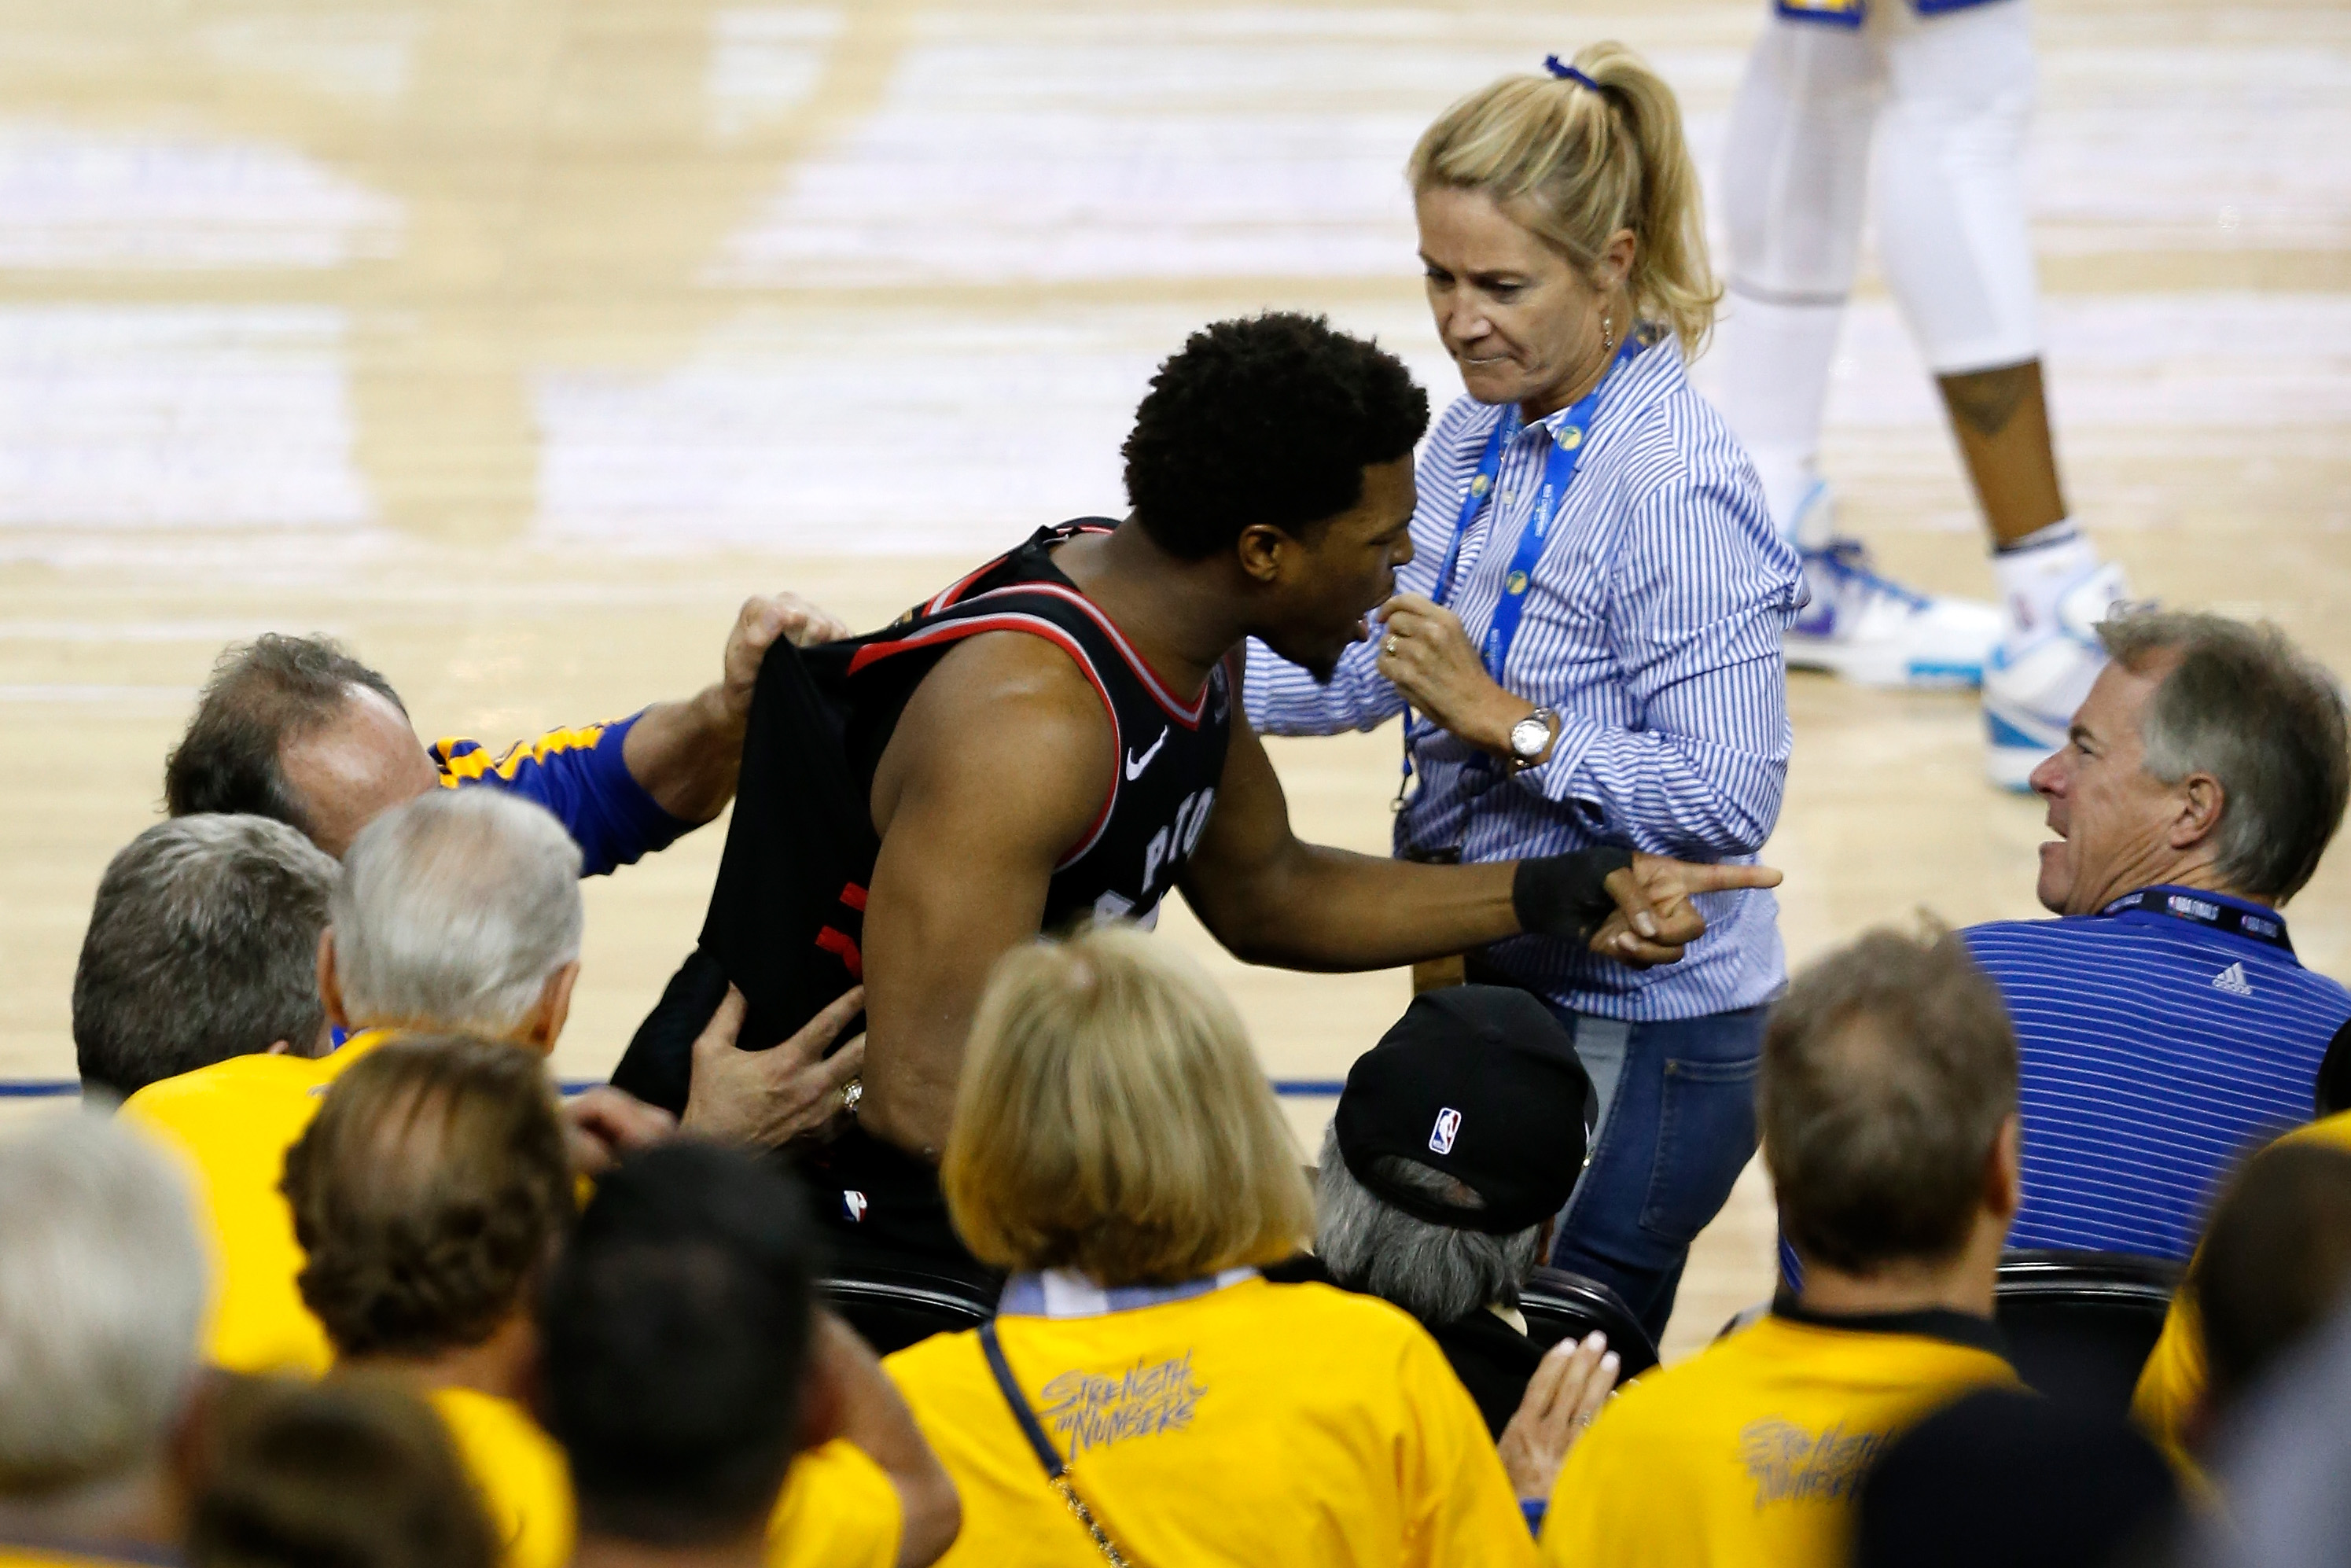 Kyle Lowry #7 of the Toronto Raptors argues with Warriors minority investor Mark Stevens  after Lowry chased down a loose ball in the second half against the Golden State Warriors during Game Three of the 2019 NBA Finals at ORACLE Arena on June 05, 2019 in Oakland, California. (Photo by Lachlan Cunningham/Getty Images)